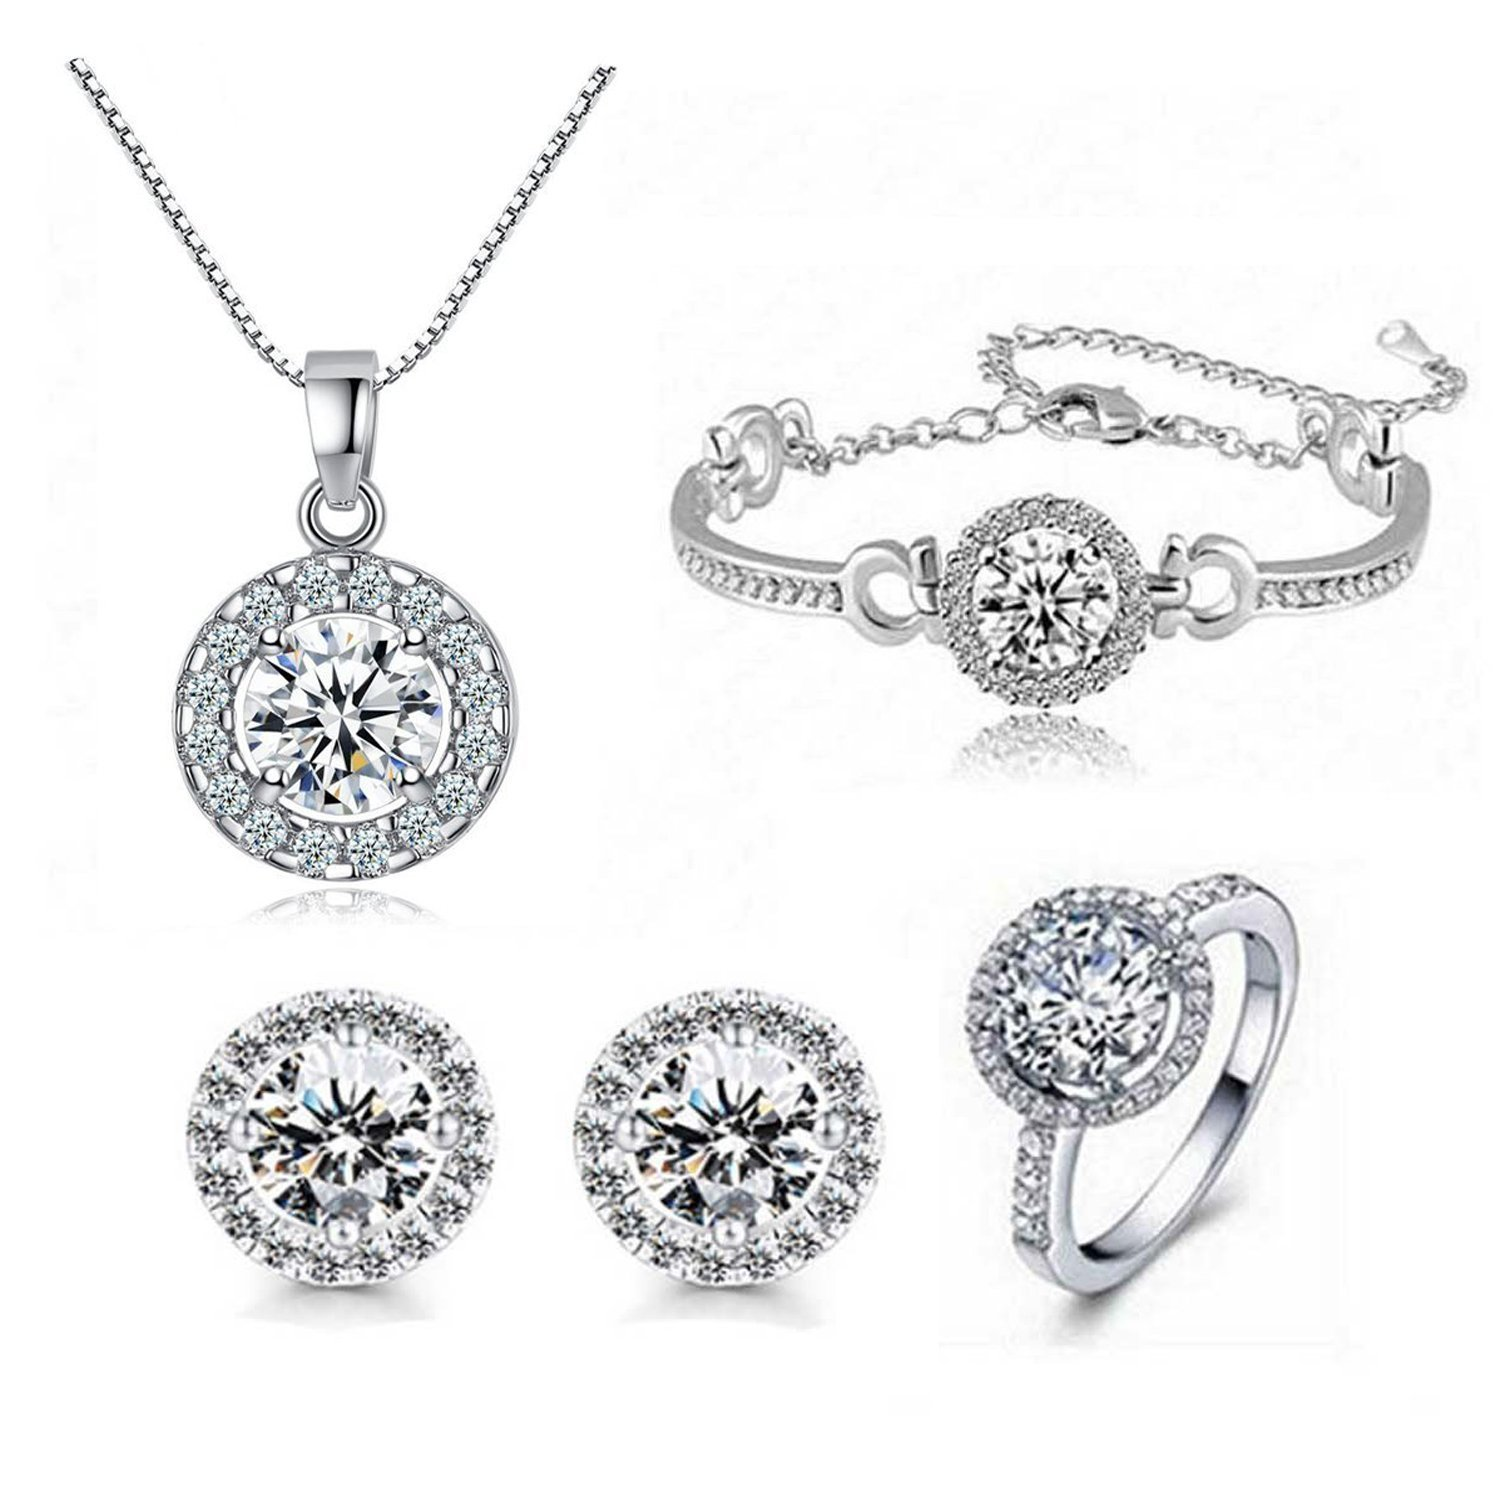 83508293d Amazon.com: Silver Plated Crystal Pendant Necklace Earrings Jewelry Set for  Women Christmas Birthday Jewelry Gift Set: Jewelry